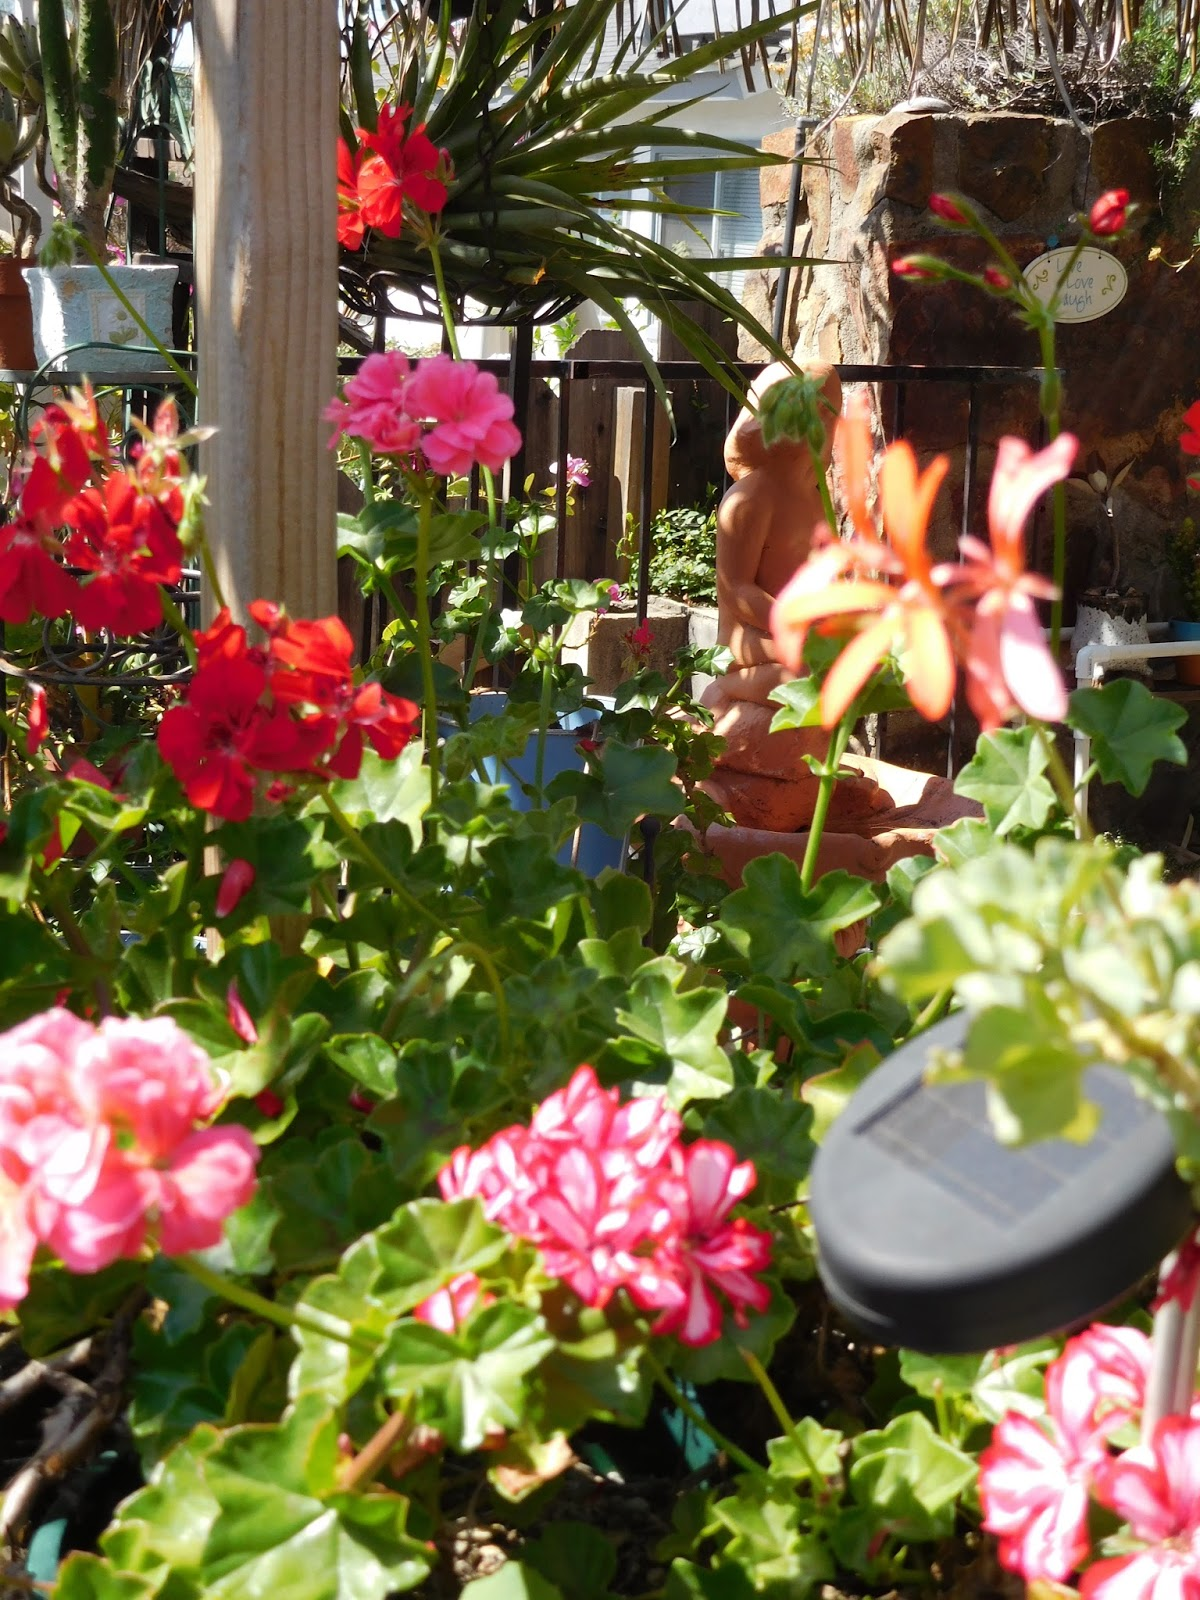 Back To Larkrise Geranium Garden And So Much More